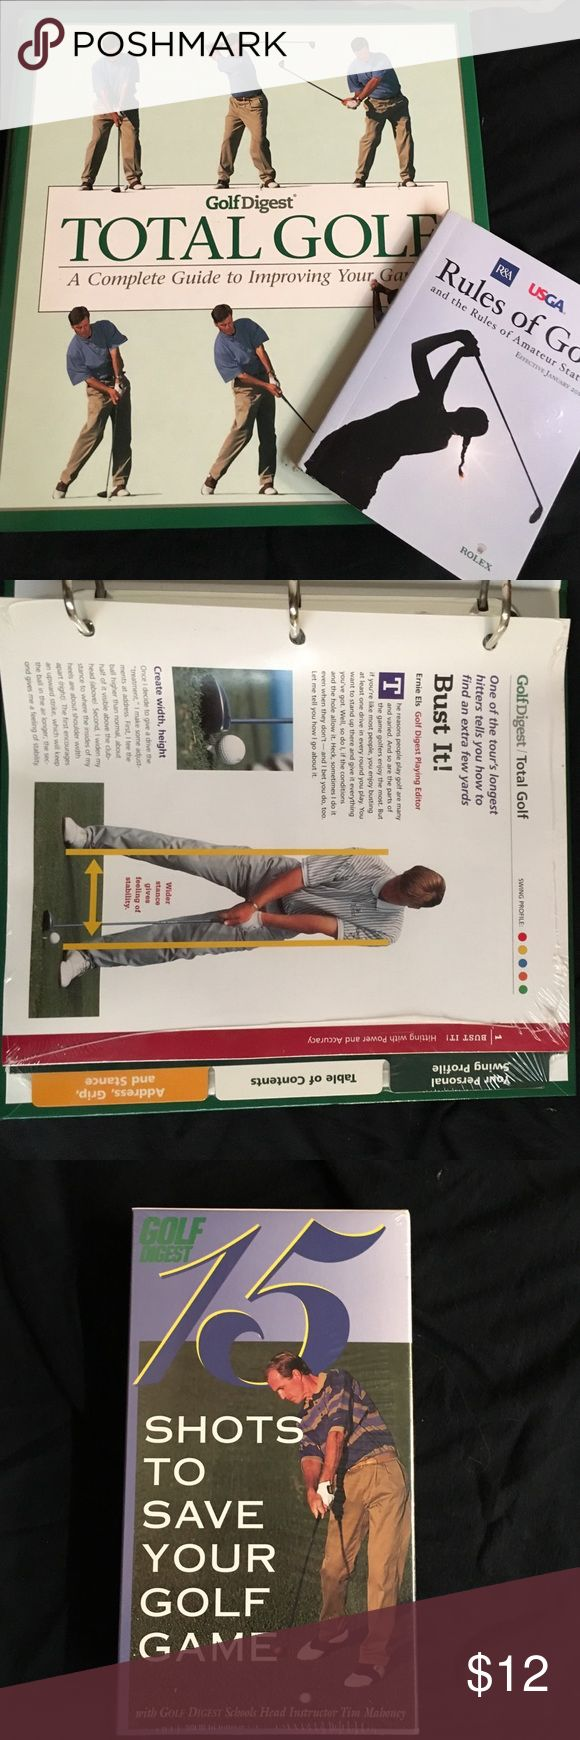 New Rules of Golf 2016, Readers Digest Total Golf New Rules of Golf 2016, Readers Digest Total Golf, Golf Digest 15 Shots to Improve Your Game VHS Both Readers Digest Still in wrap. Accessories